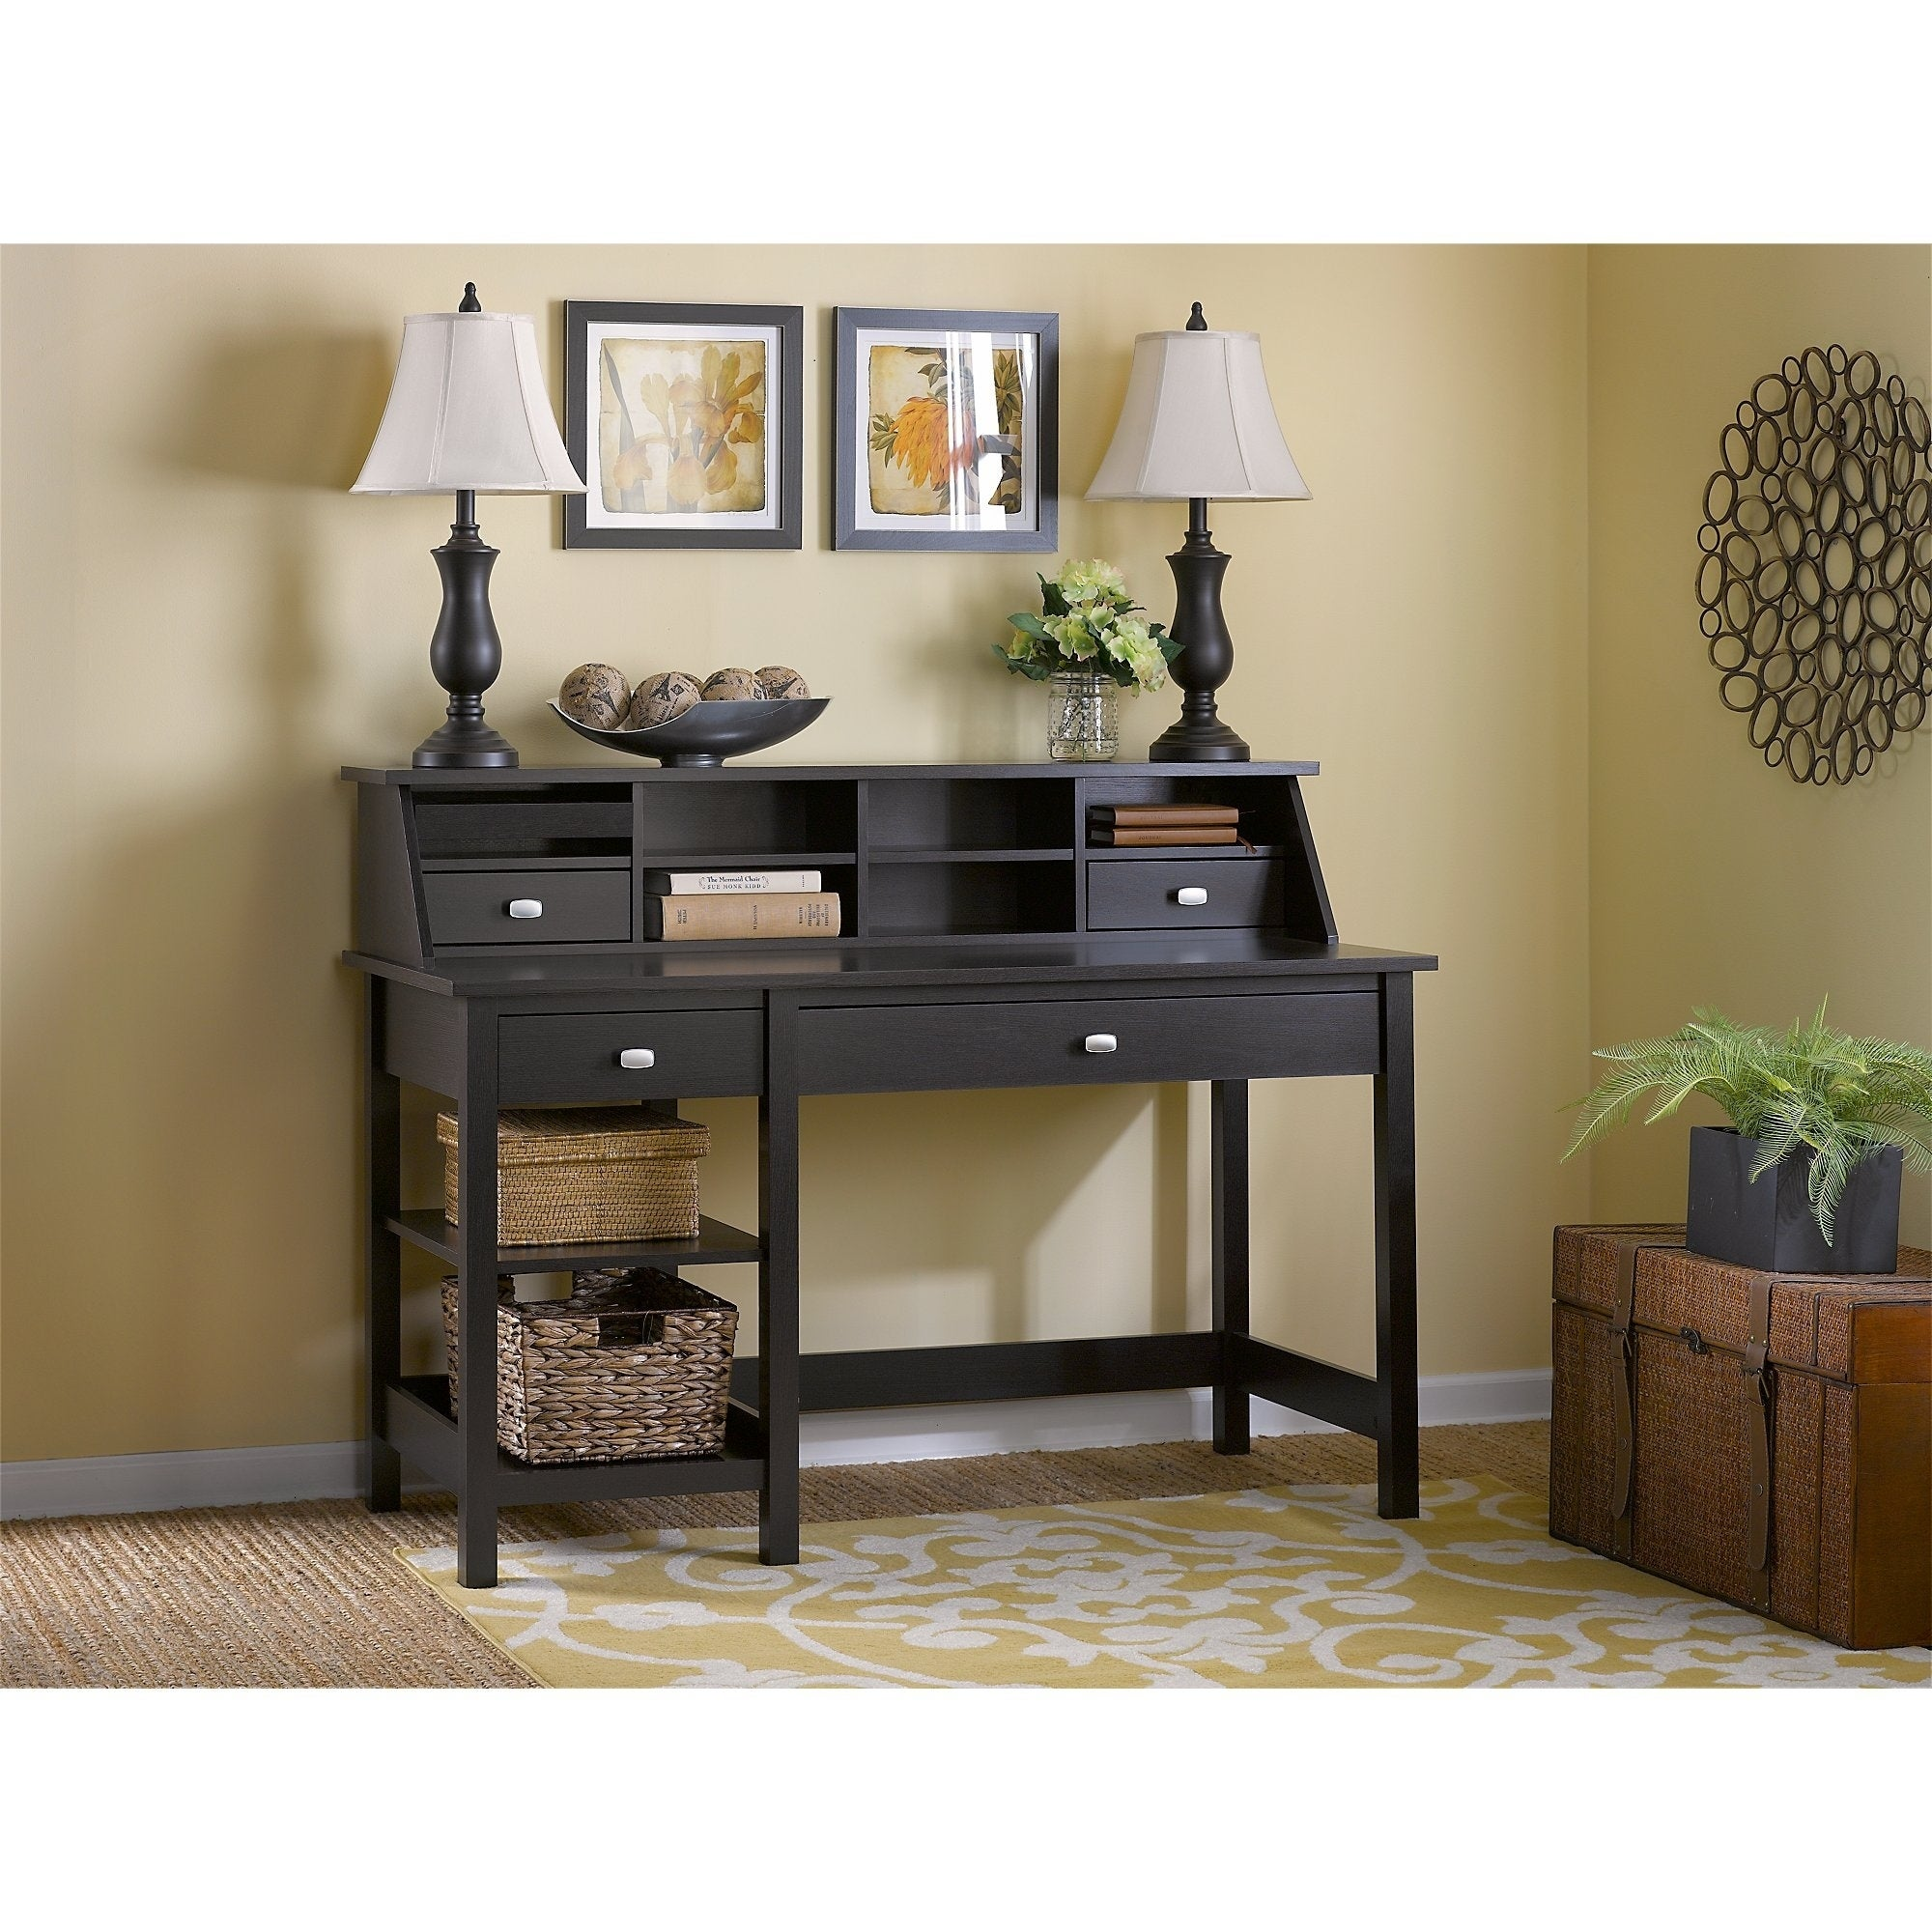 computer drawers oak cheap inspirations wooden with most desk small great simple